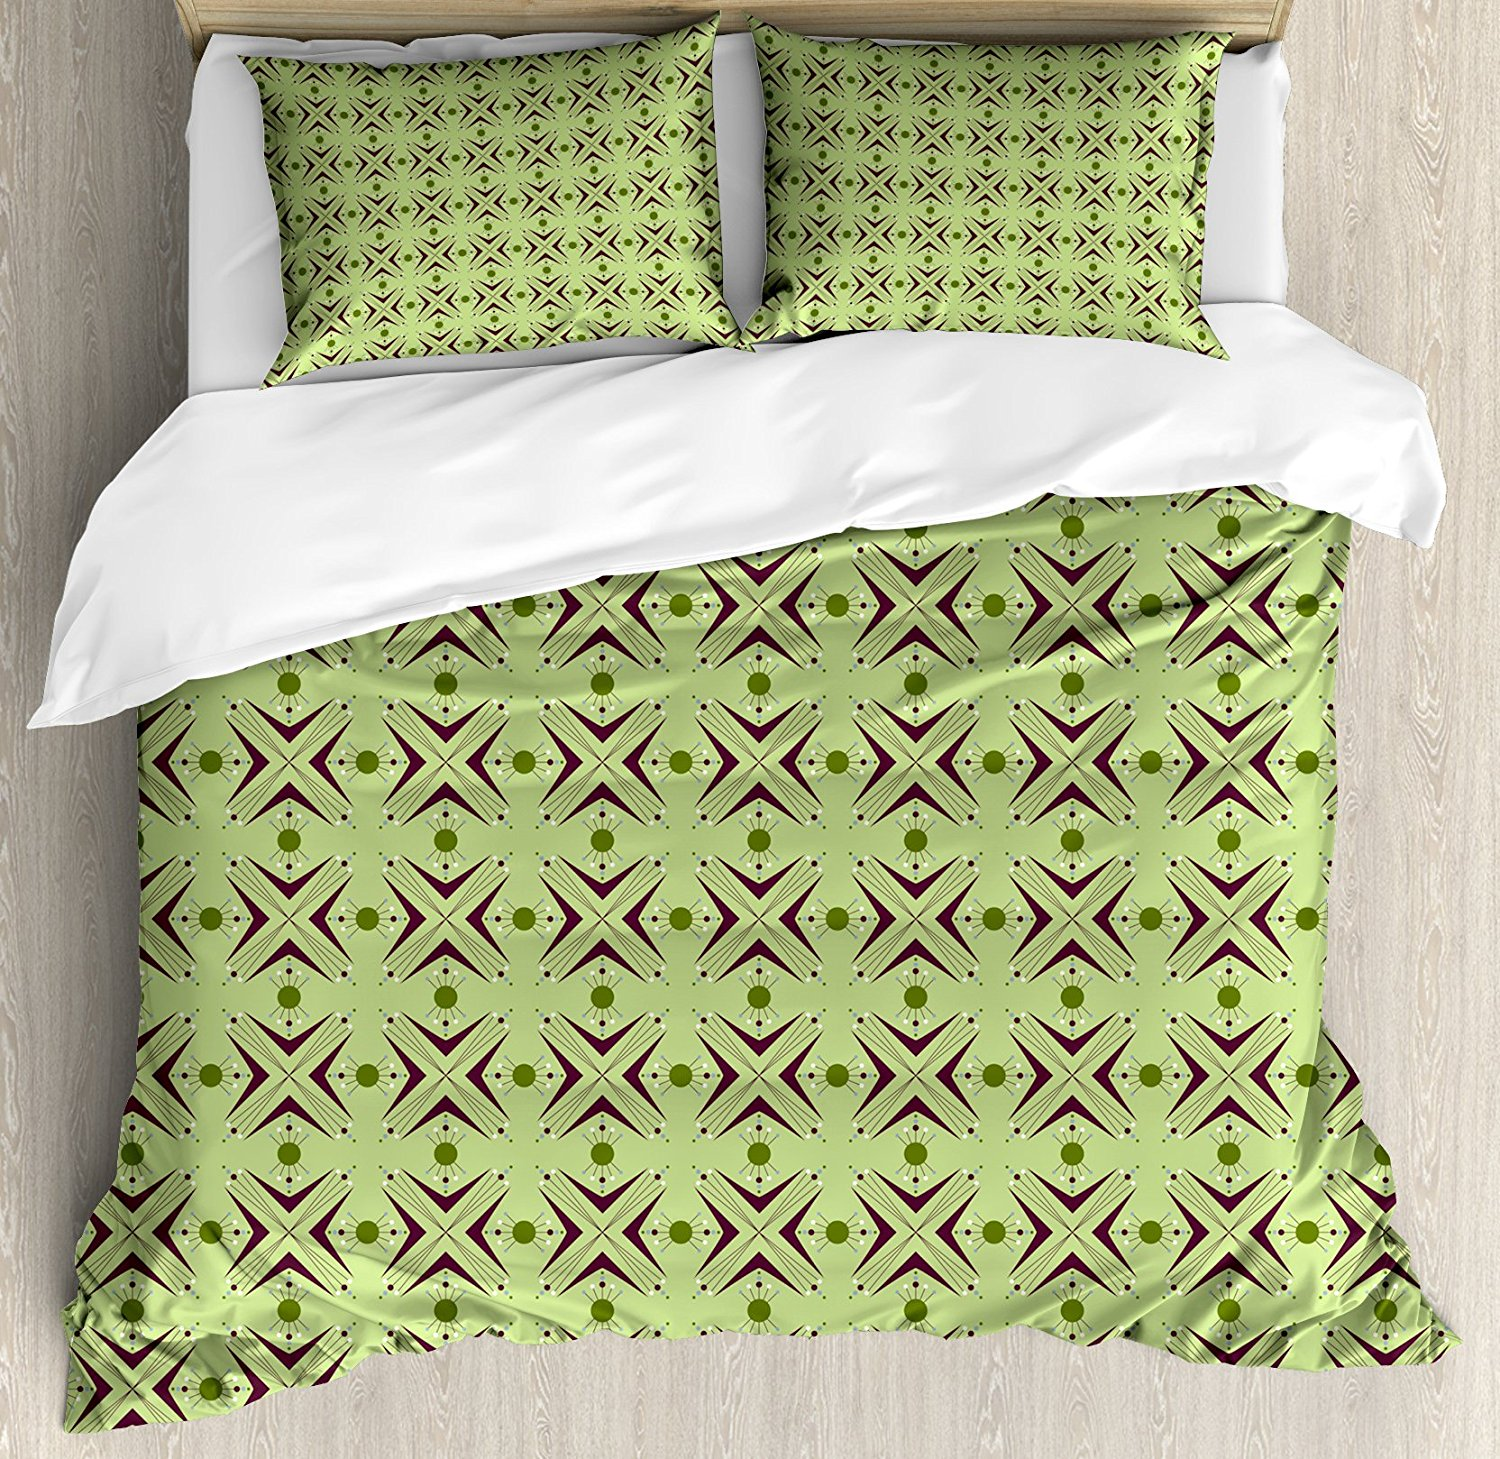 Mid Century Duvet Cover Set , Atomic Form with Boomerang Details Dots and Crossed Lines,  4 Piece Bedding Set